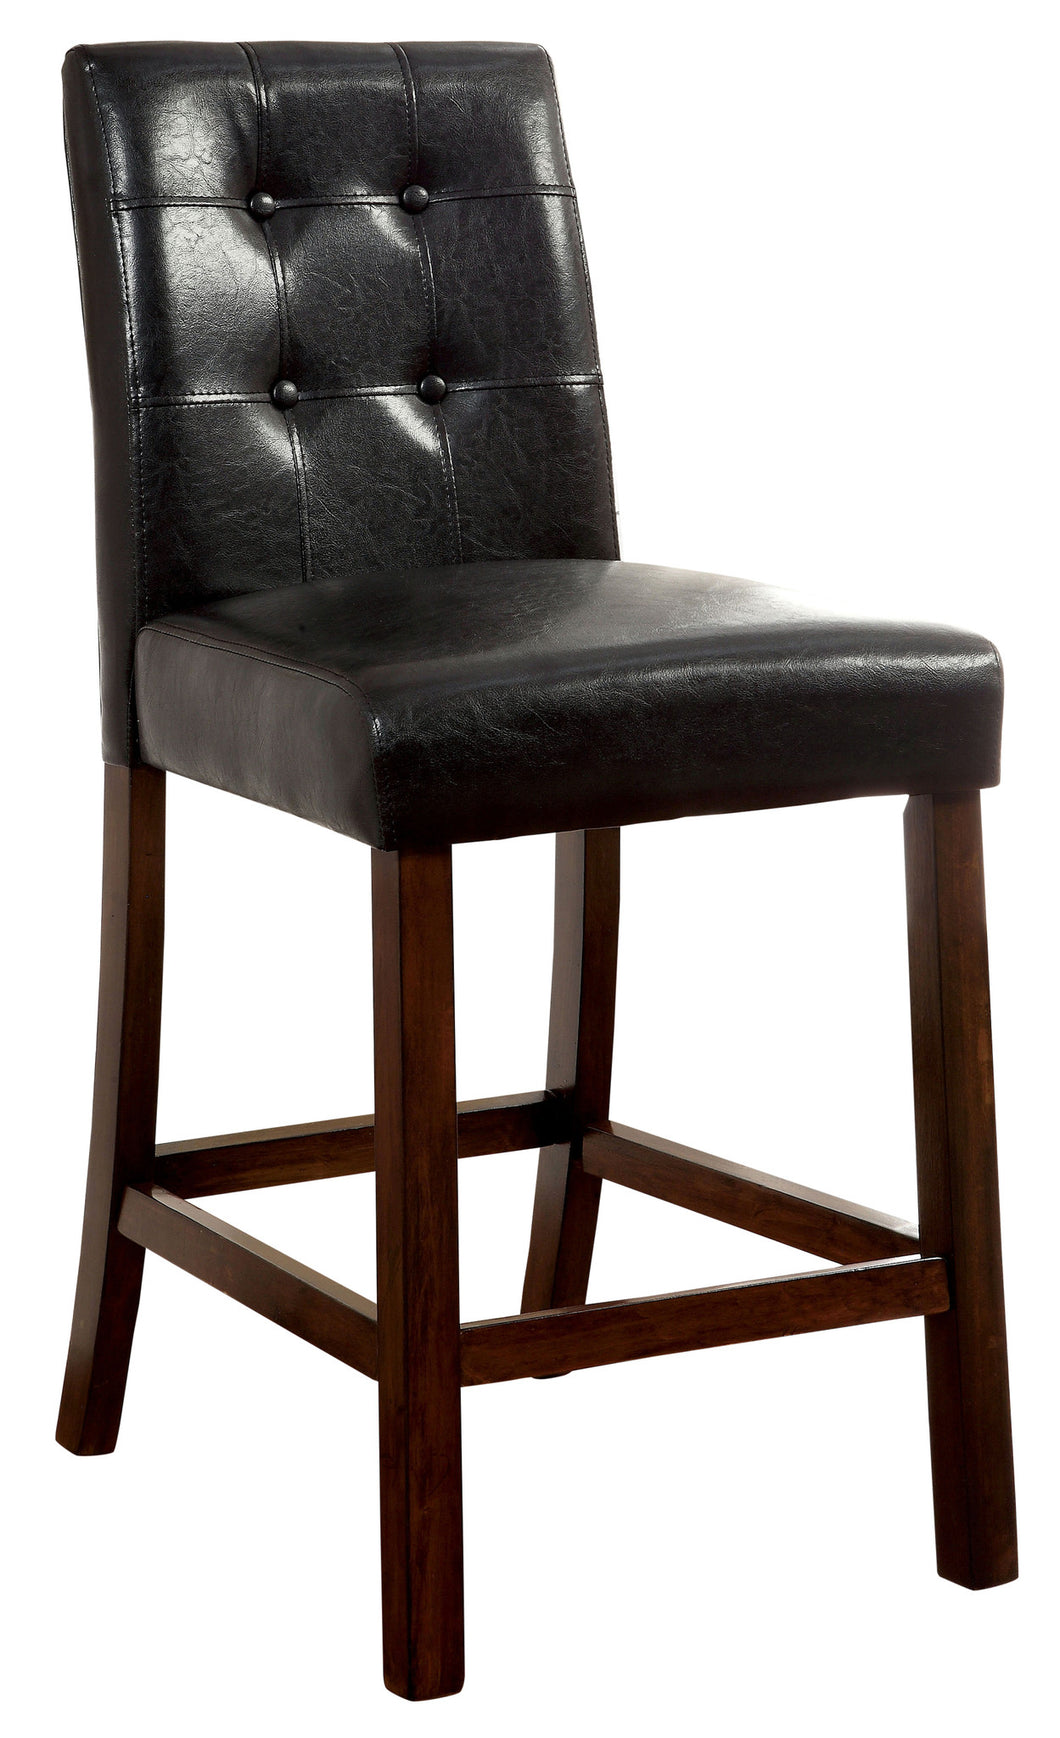 Angorah Contemporary Leatherette Counter Height Brown Cherry Dining Chair (Set of 2)